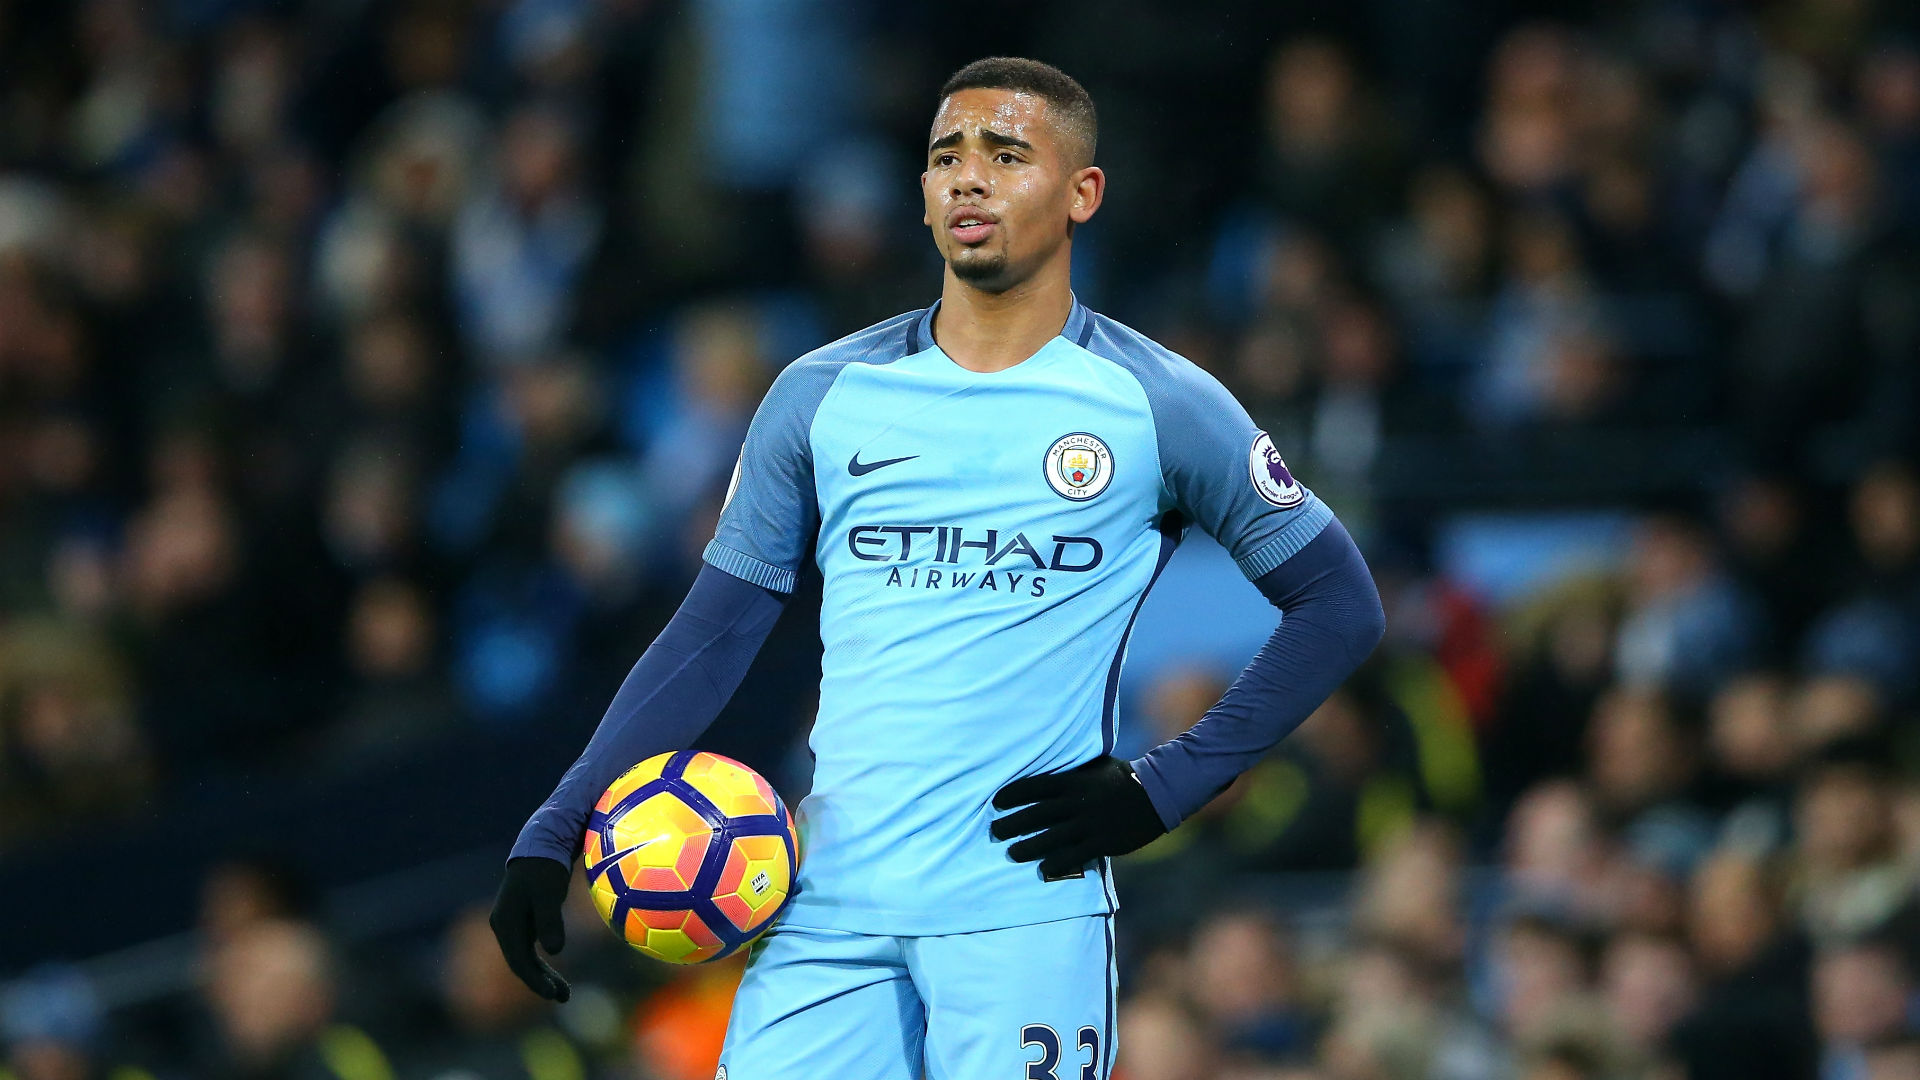 Cute Animated Wallpapers Free Download Gabriel Jesus Wallpapers